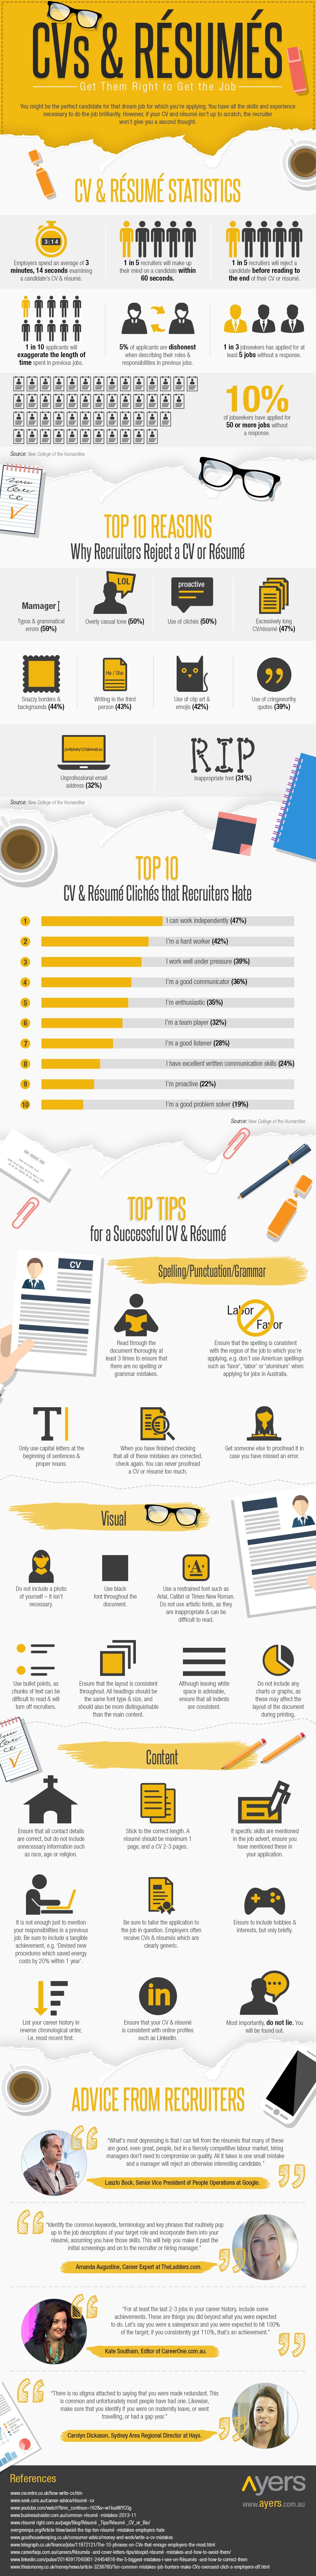 CVs U0026 Resumes: Get Them Right To Get The Job Infographic  What Is A Resume For A Job